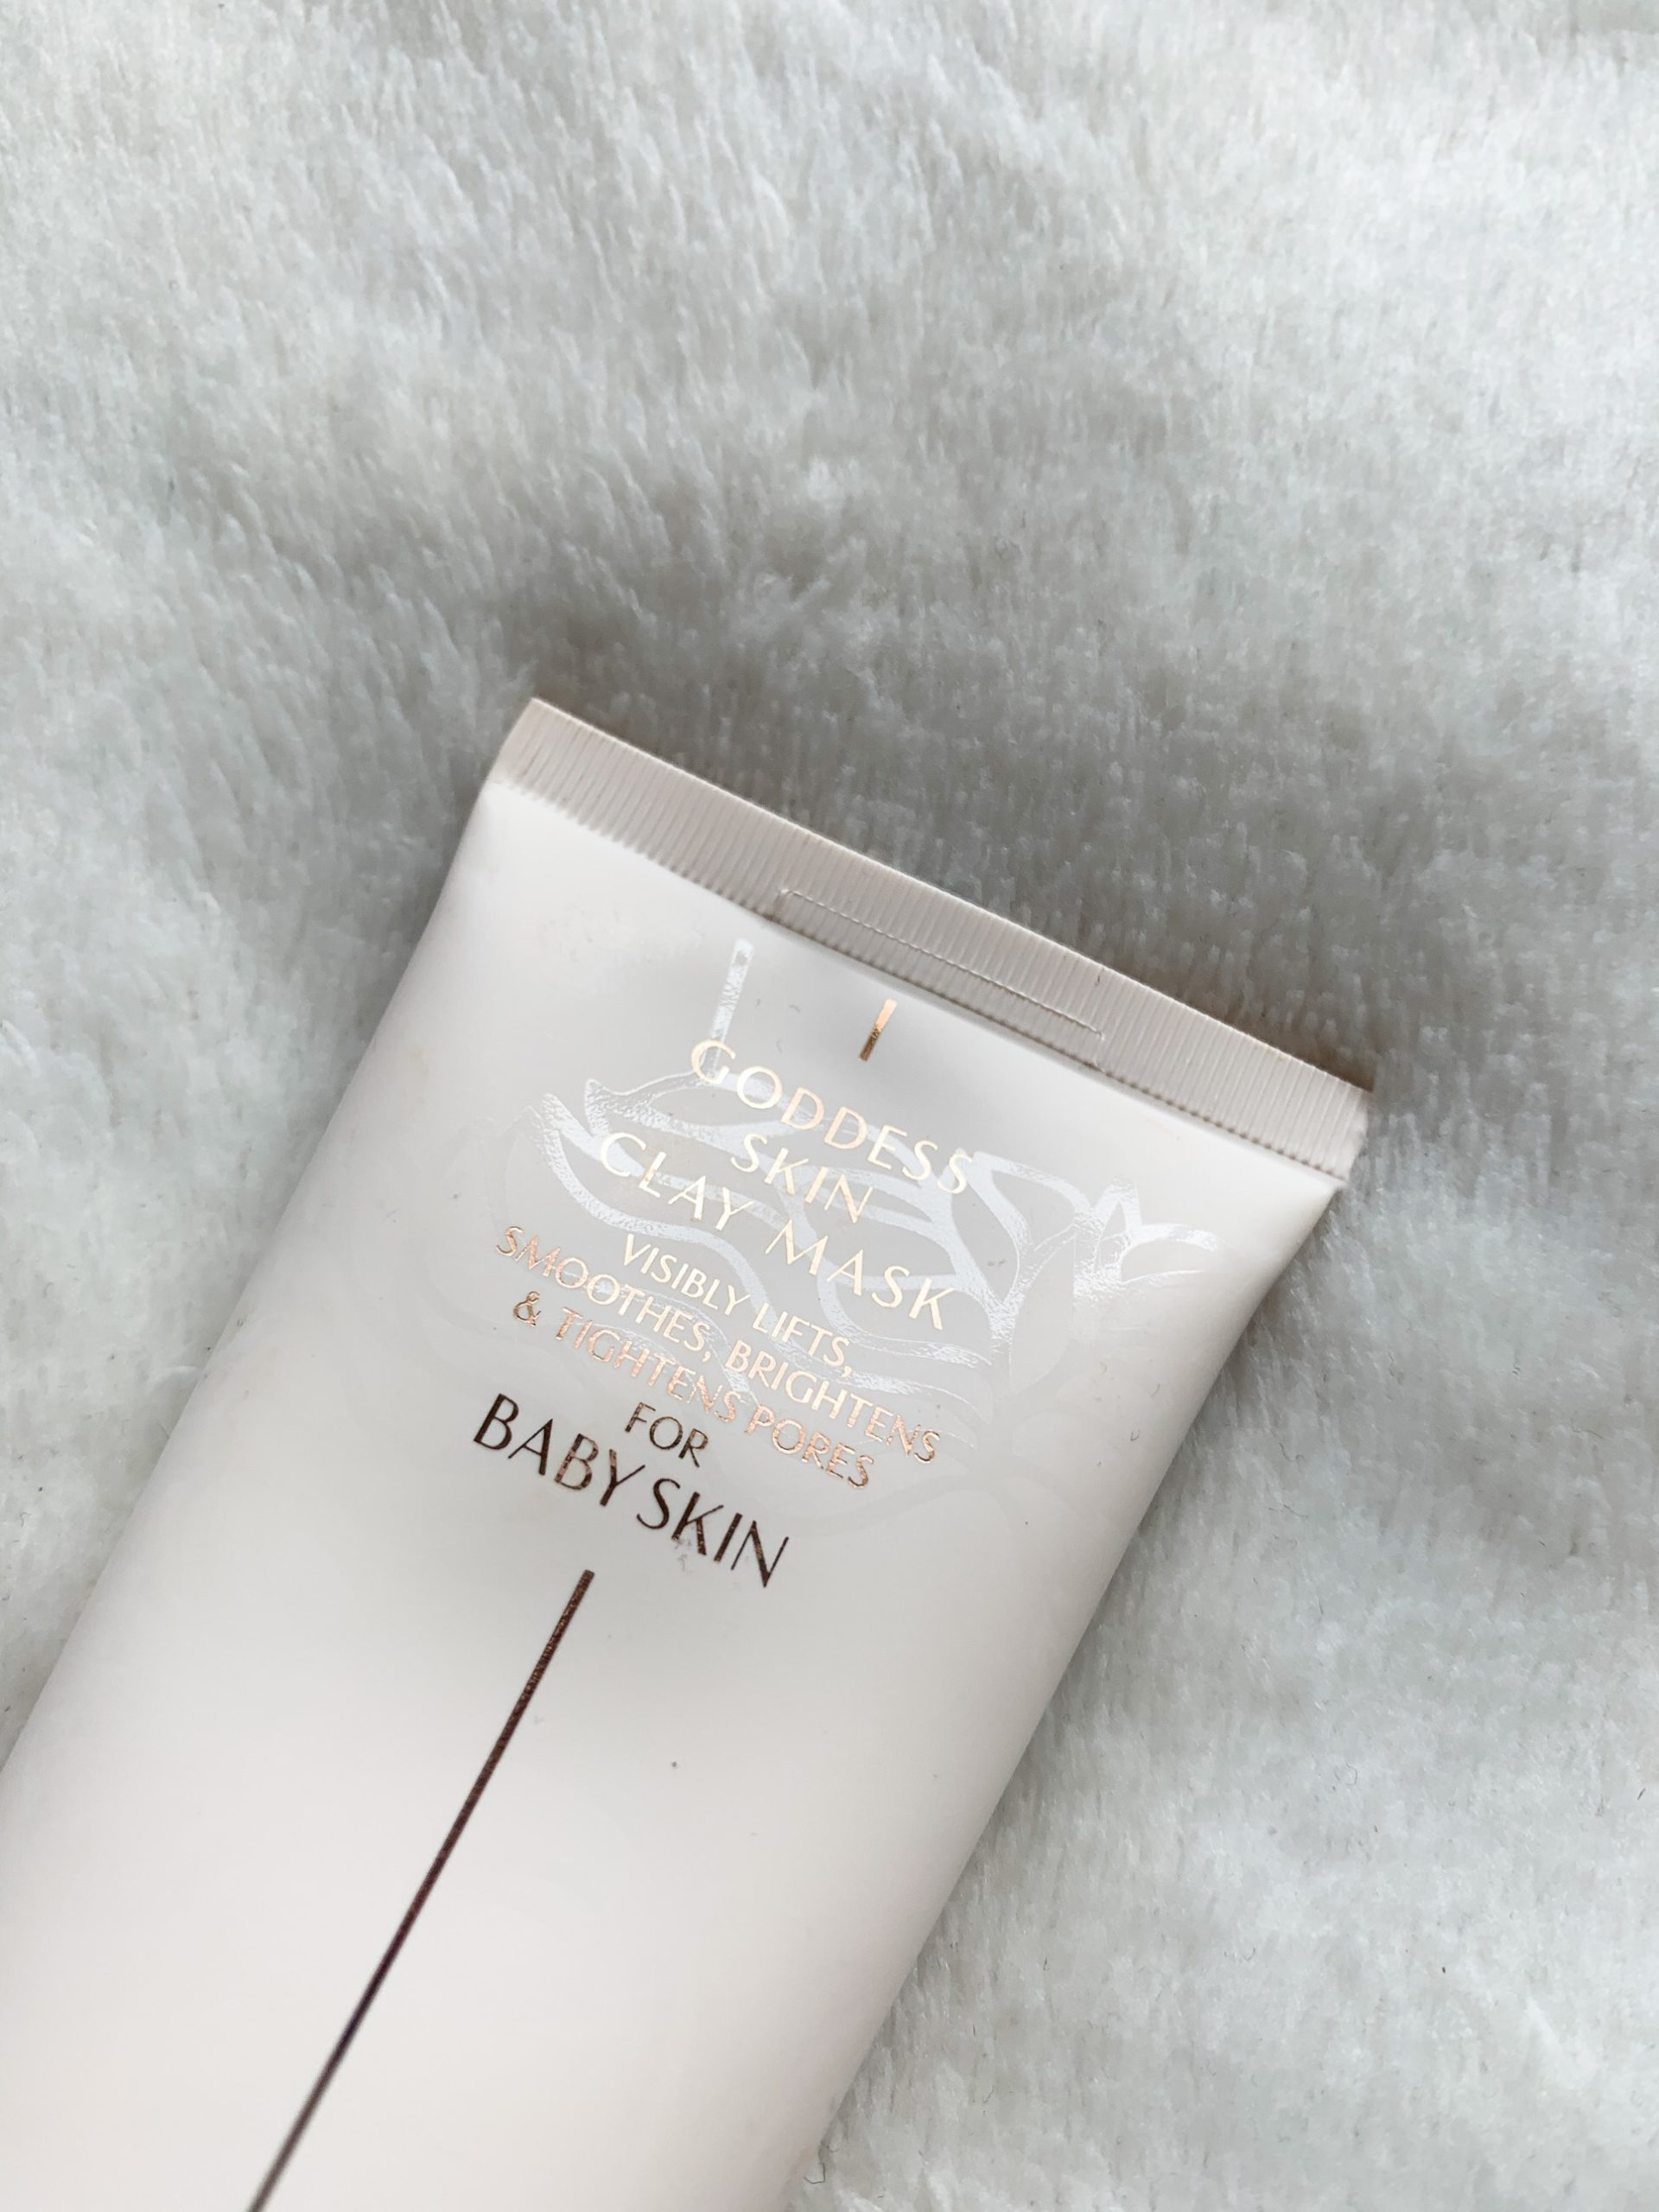 Charlotte Tilbury goddess skin clay mask against a white fluffy blanket